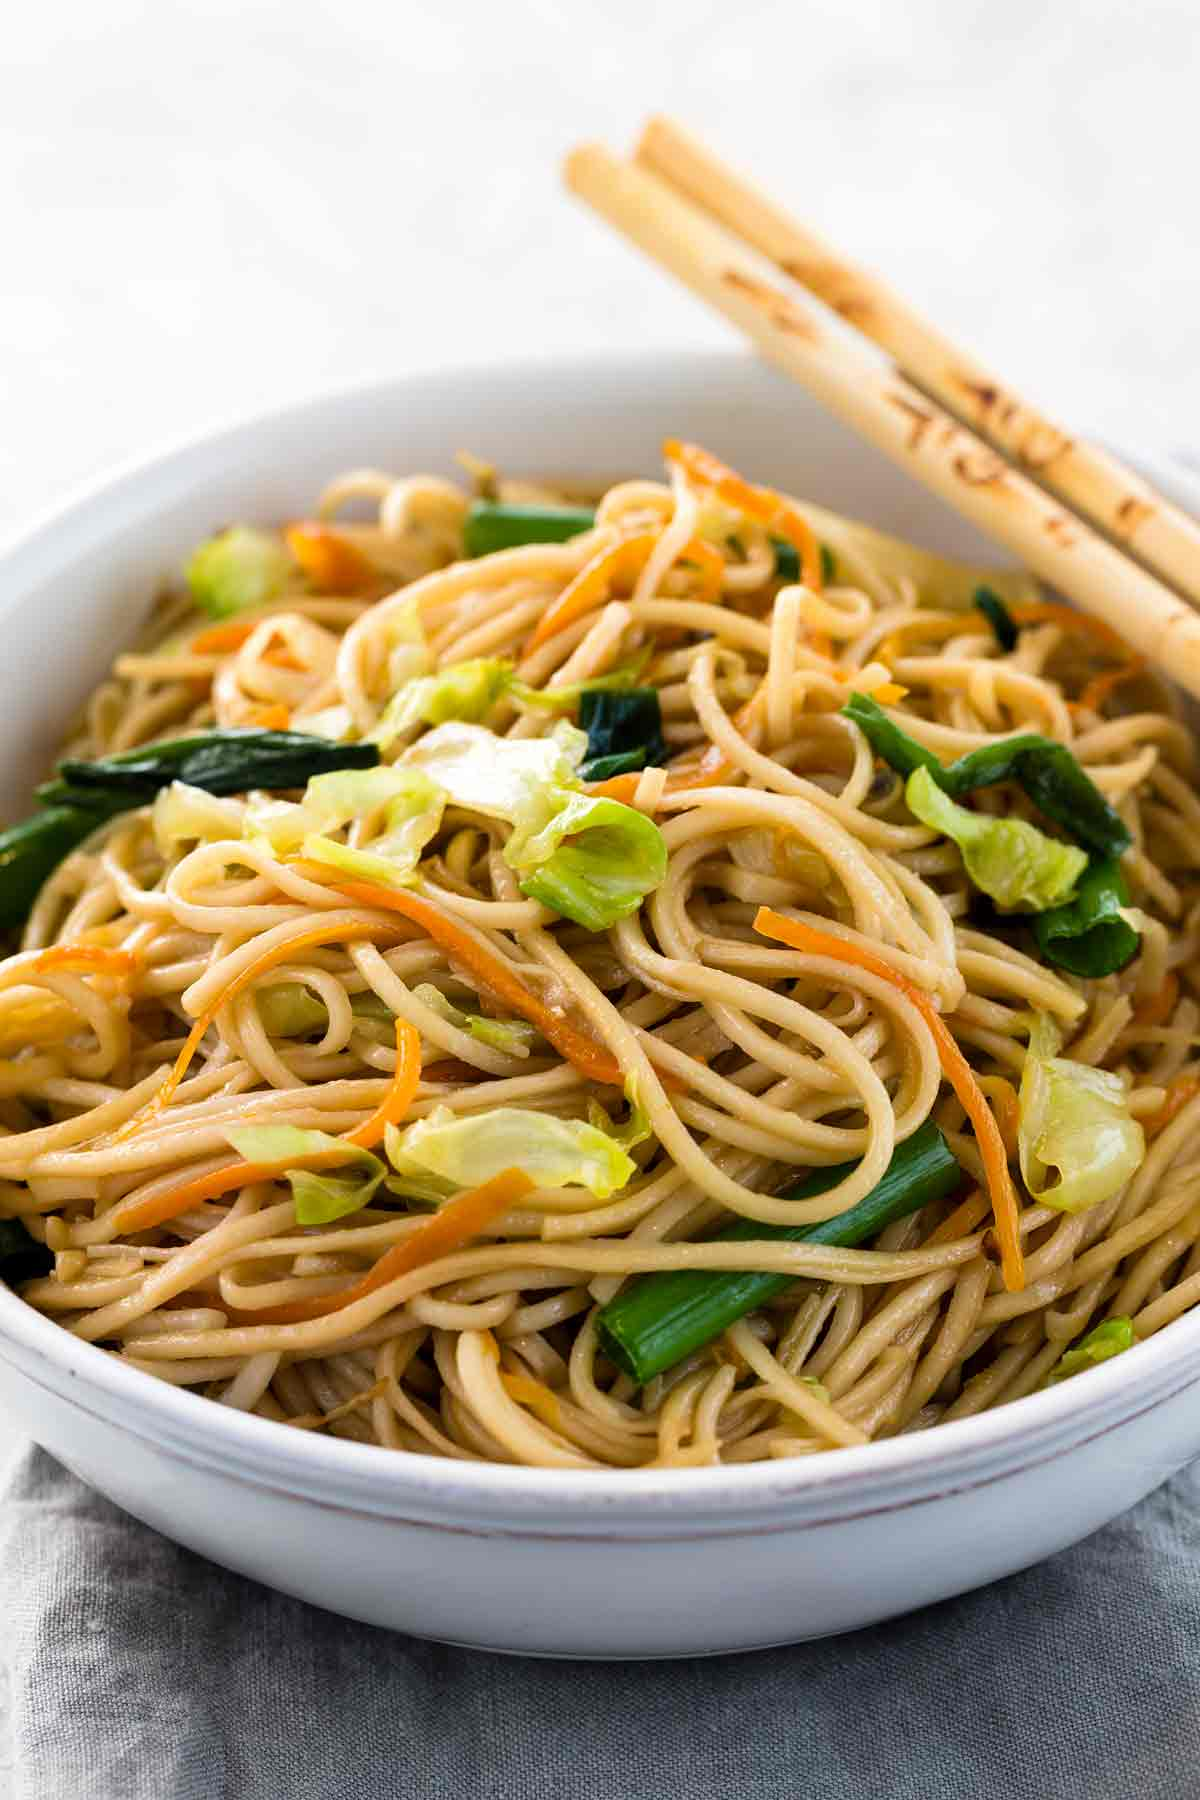 Chow mein recipe jessica gavin chopsticks on a white bowl filled with chow mein and vegetables freerunsca Gallery